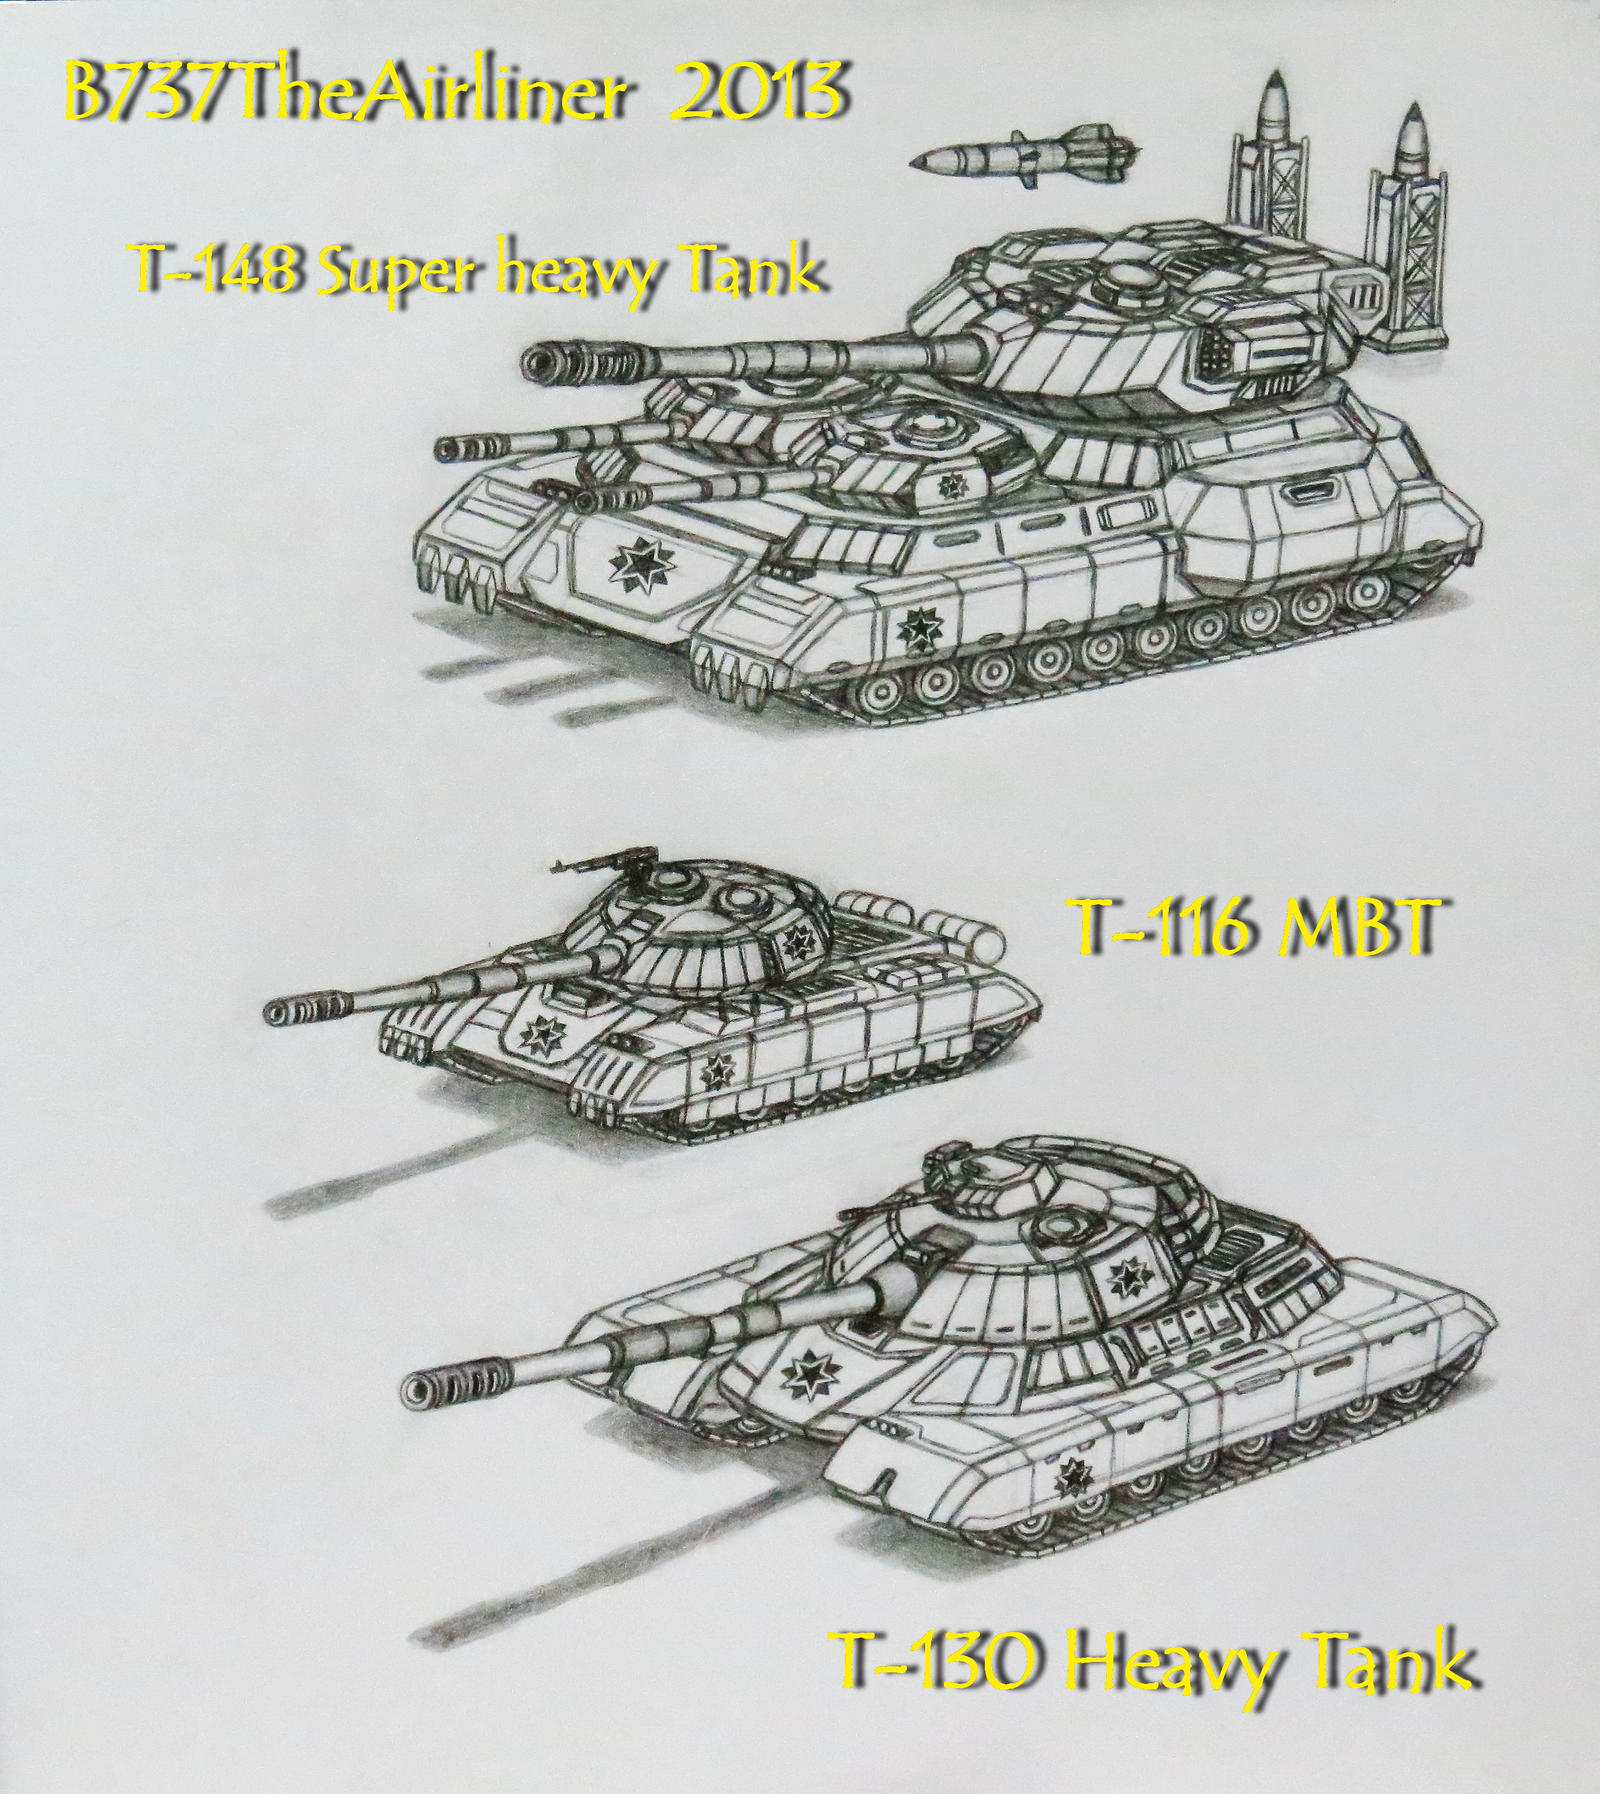 The Red Star's Tanks Arsenal by B737TheAirliner